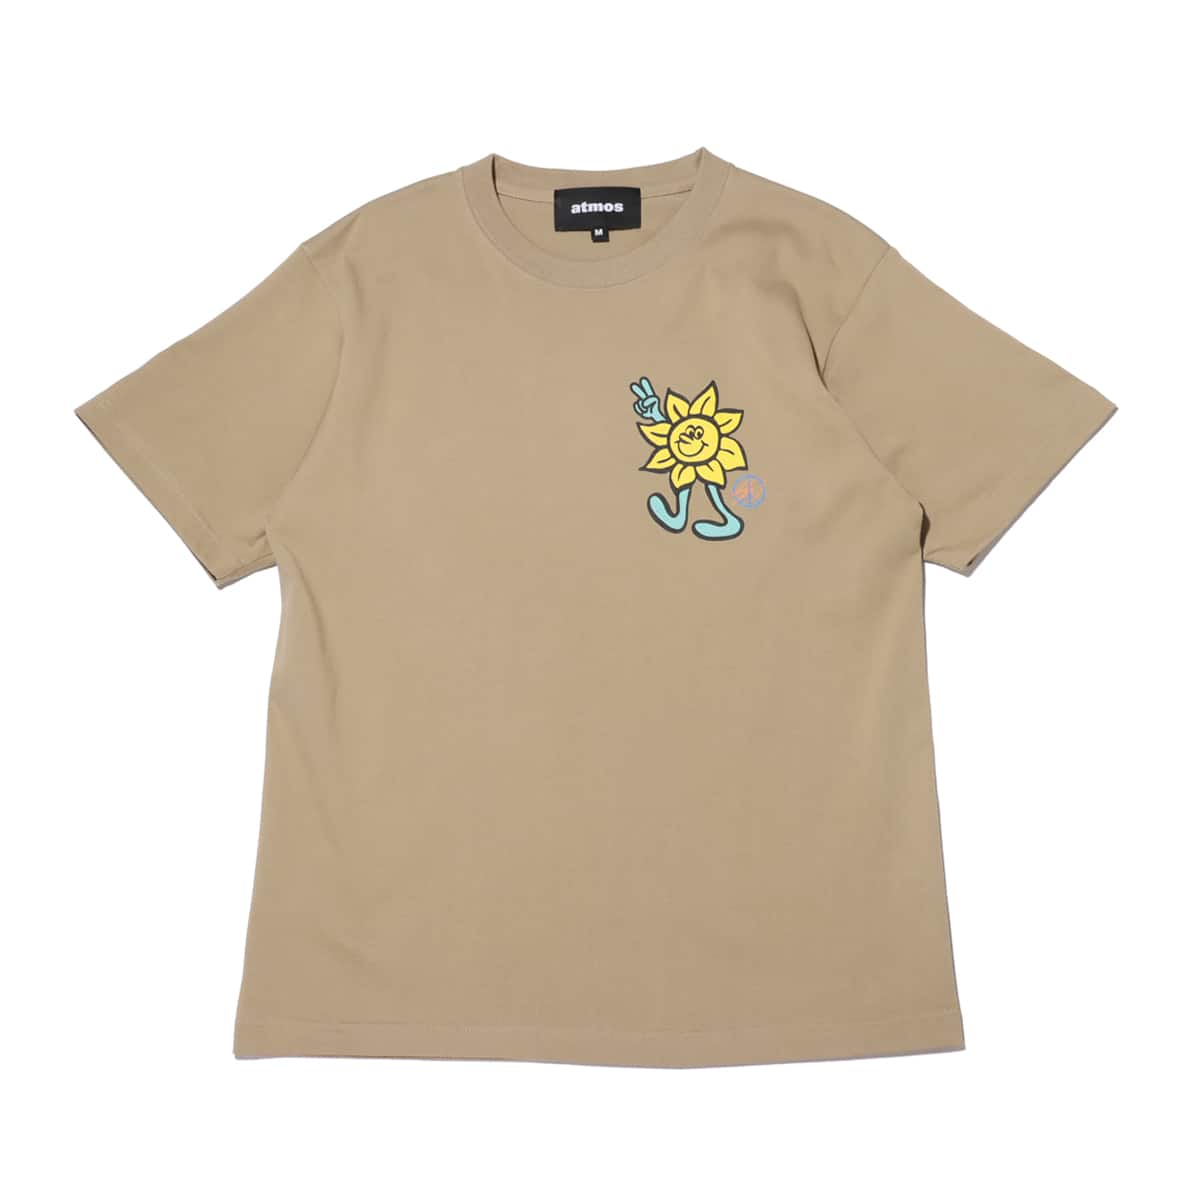 atmos x ROUND TWO SUNFLOWER beige 21SP-S_photo_large